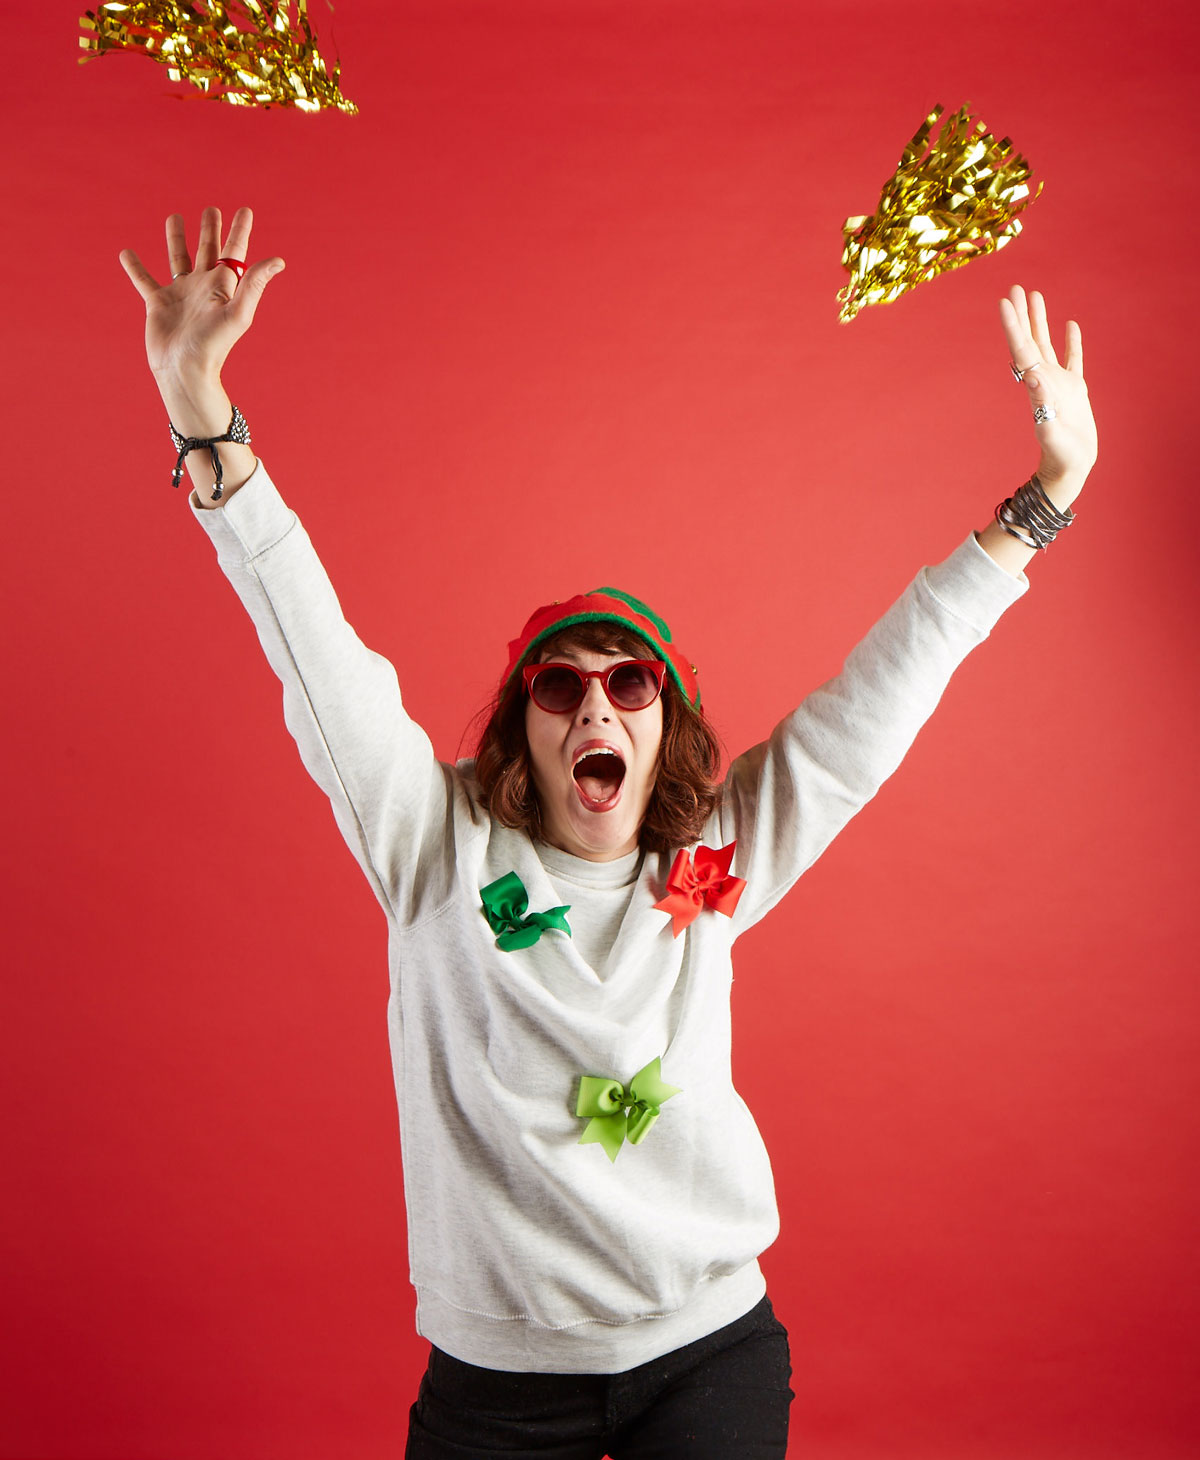 Woman with hands in the air and mouth open with shiny gold paper floating down